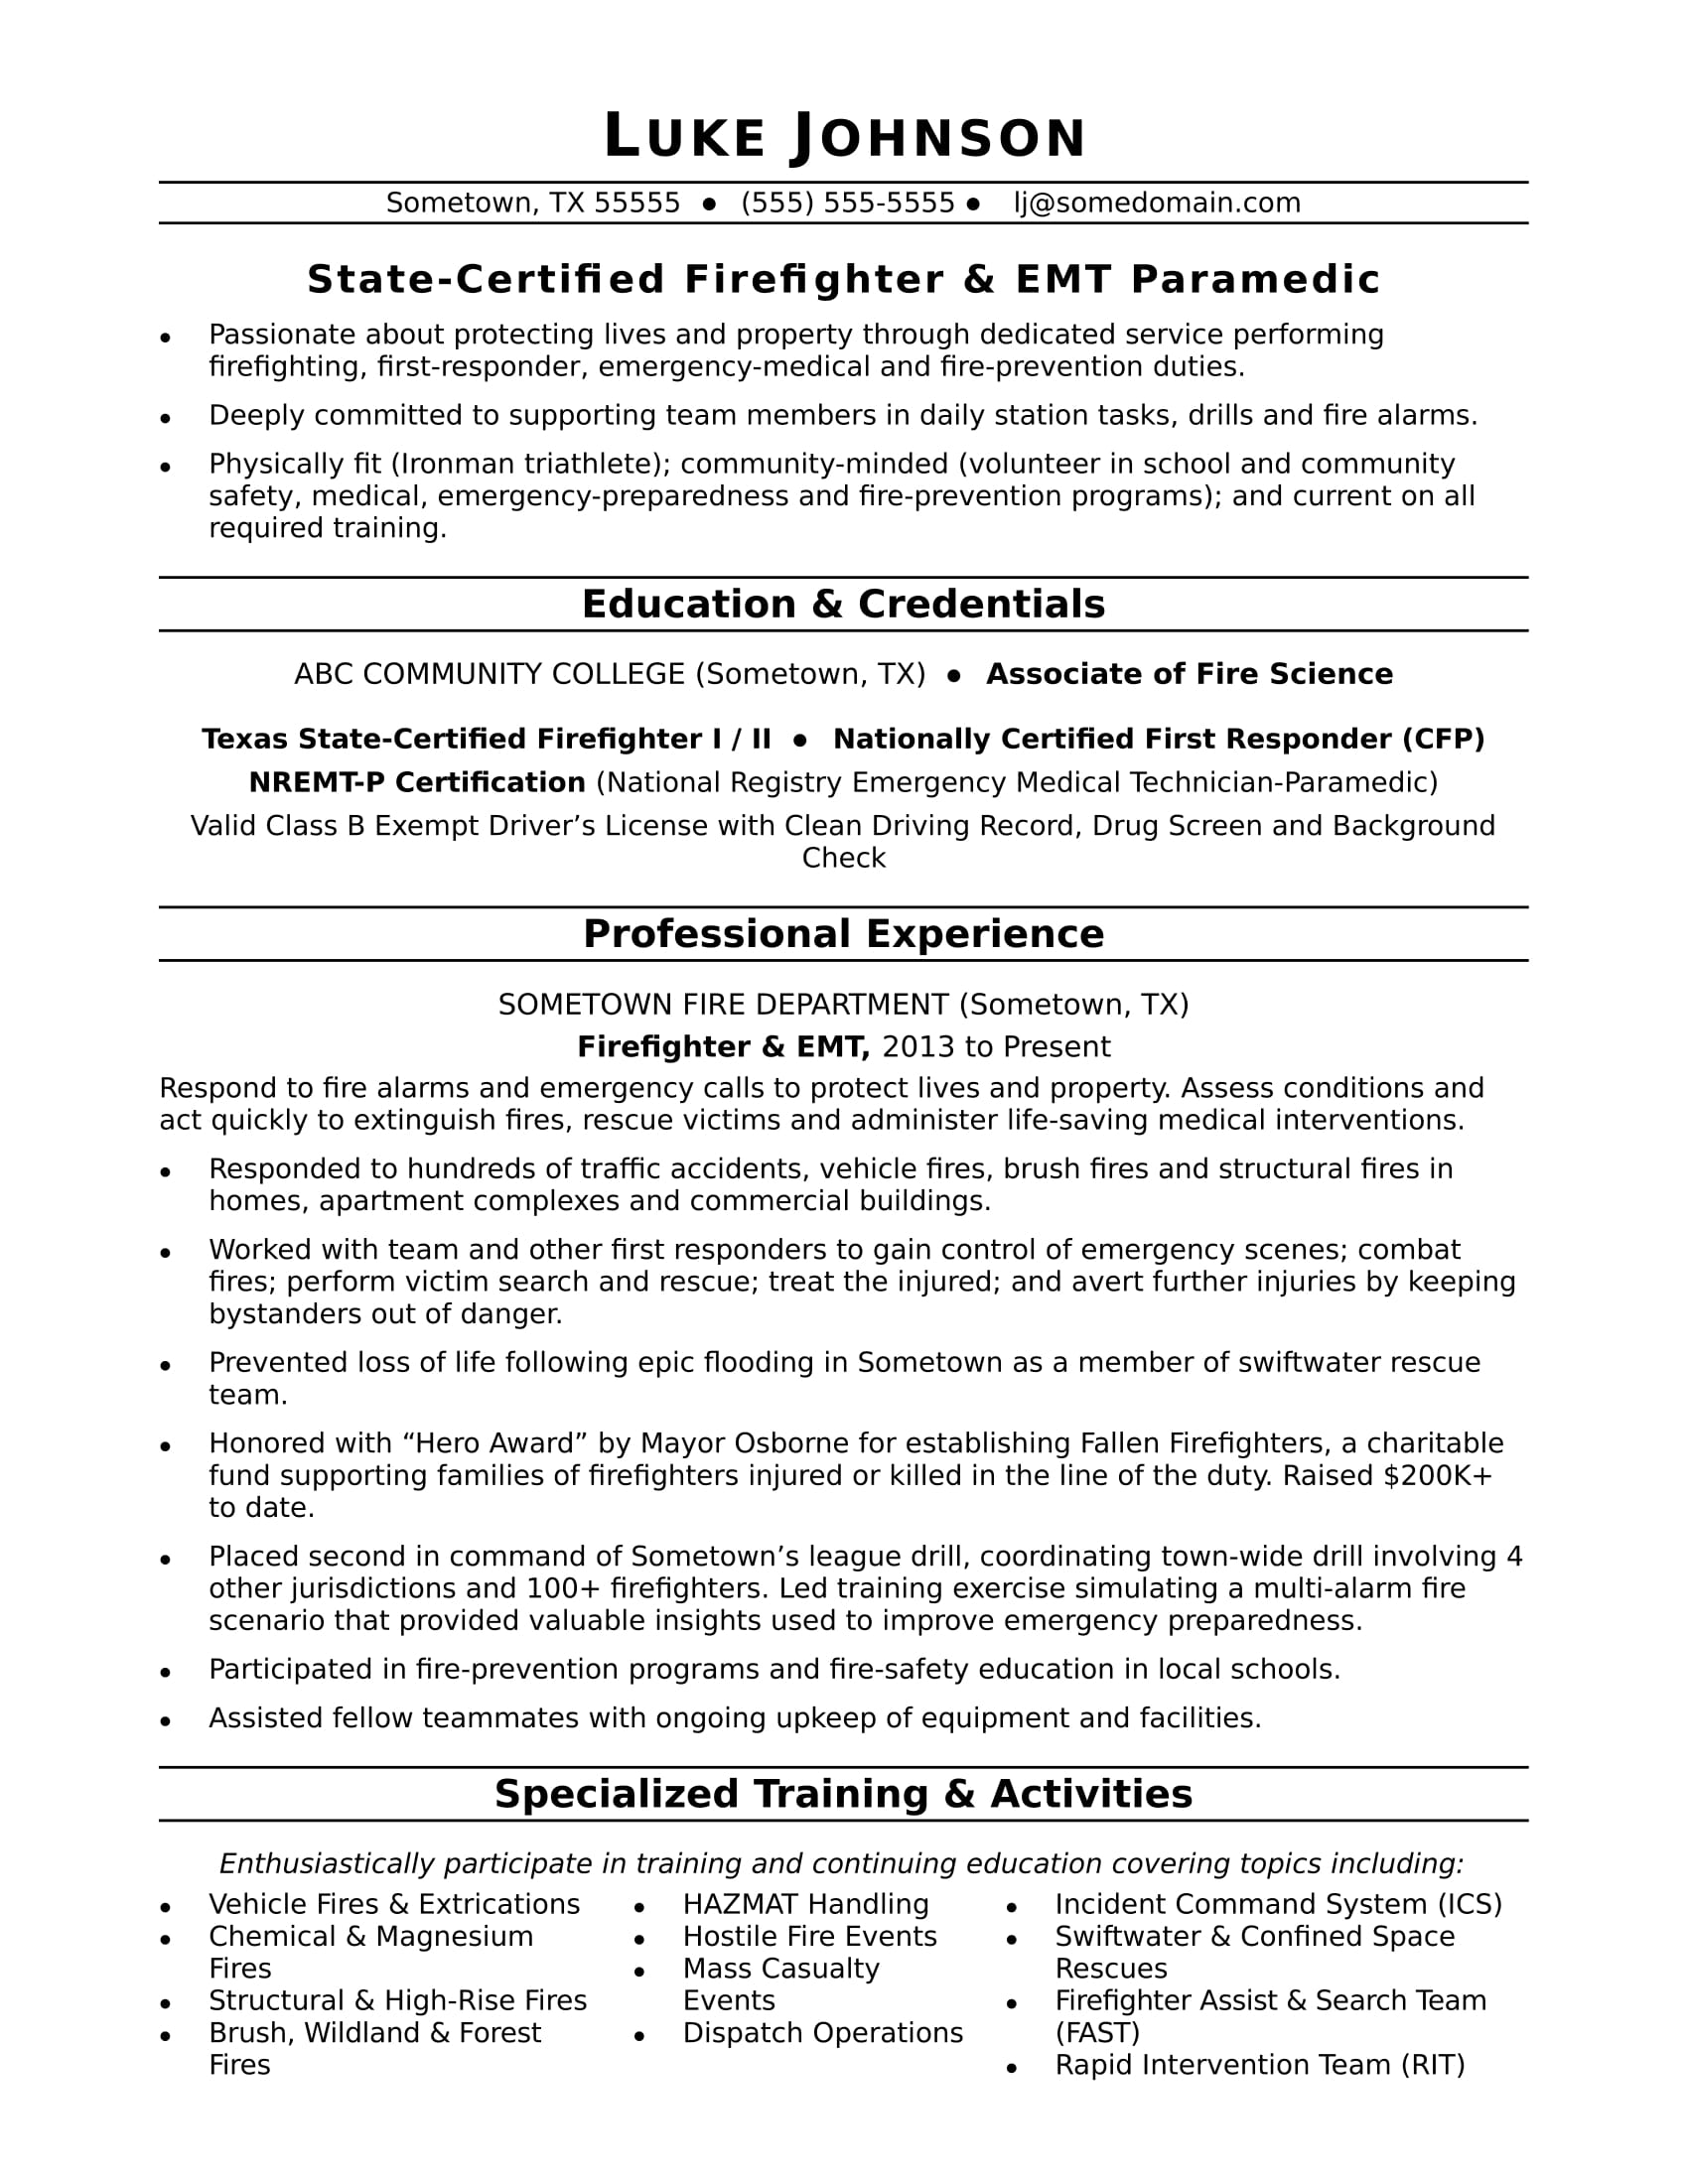 firefighter resume sample monster paramedic samples employer asking for photo with cater Resume Paramedic Resume Samples